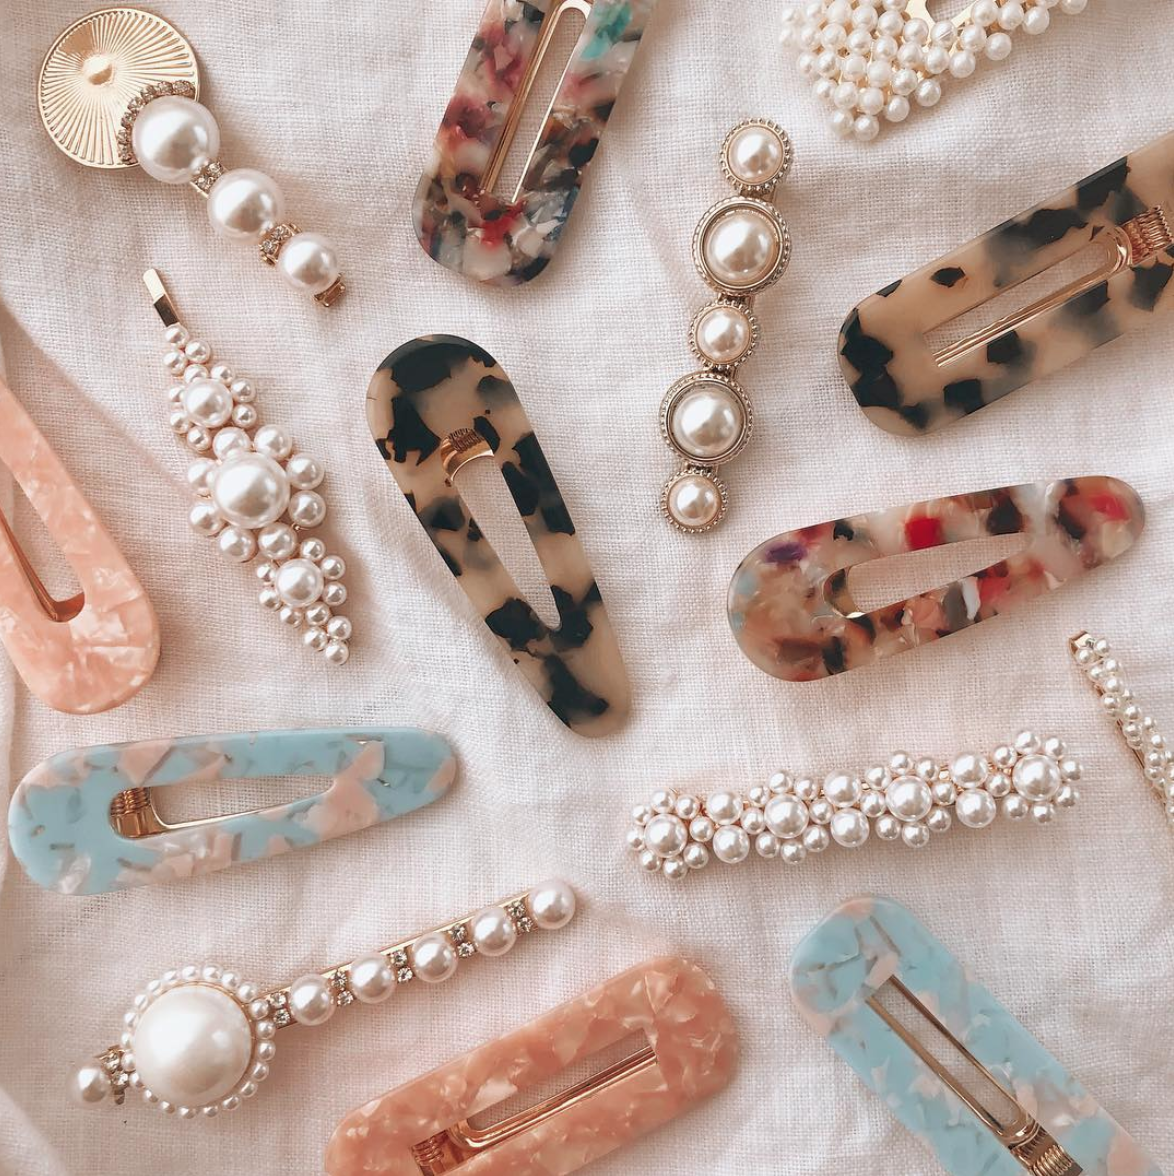 Hair clips or how to step up your hair game this season